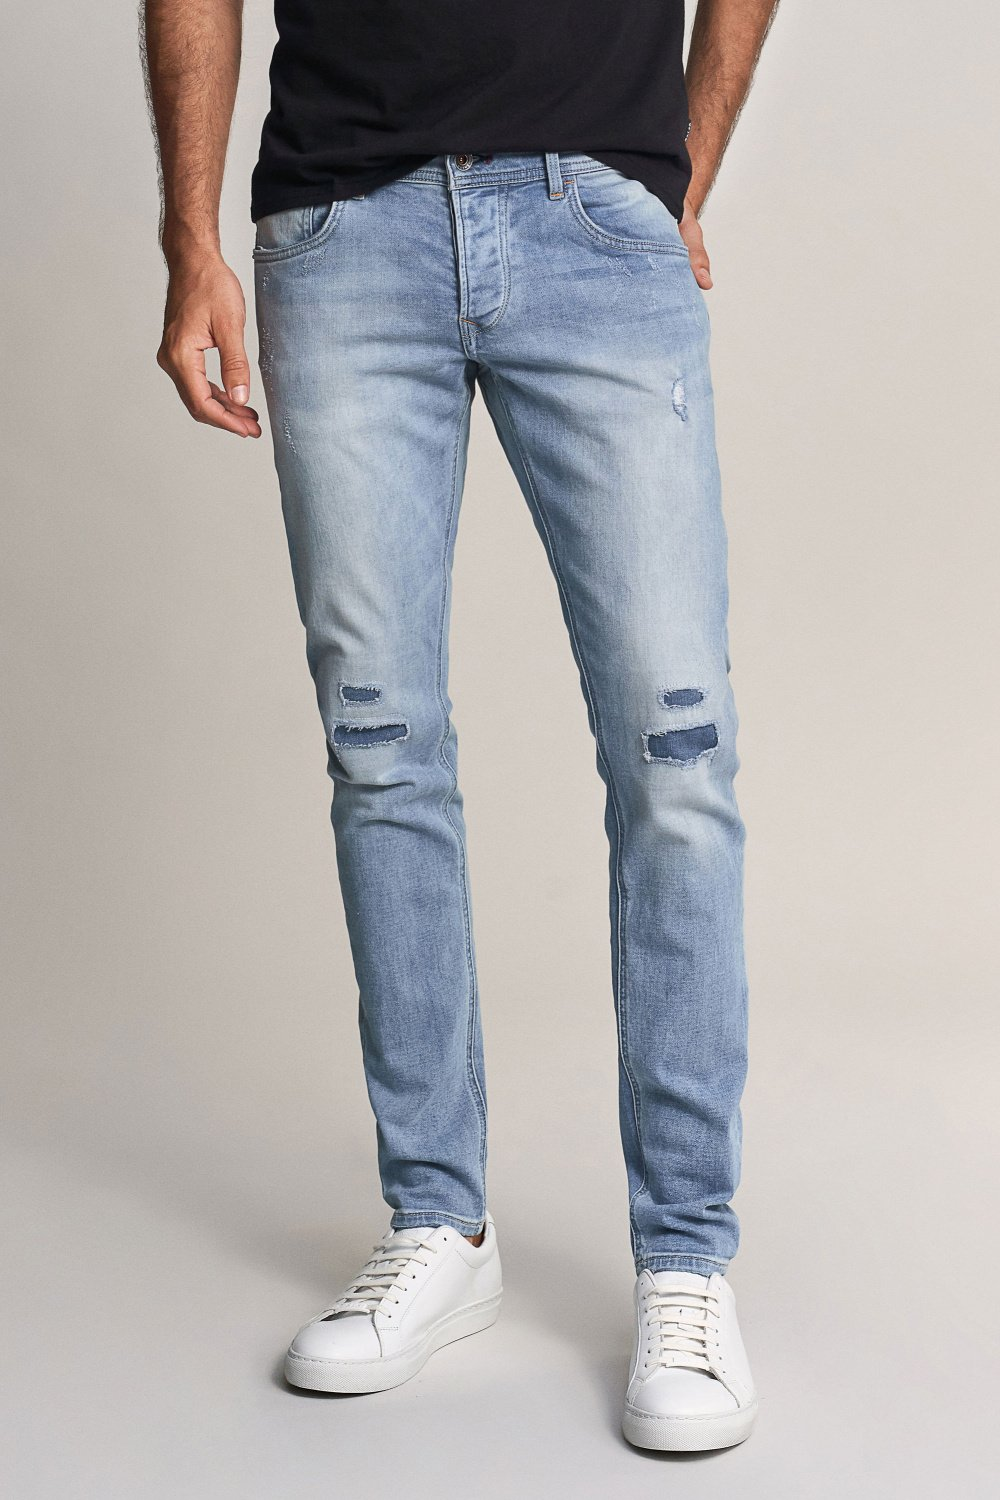 Jogger Skinny Clash premium wash light rinse jeans - Salsa